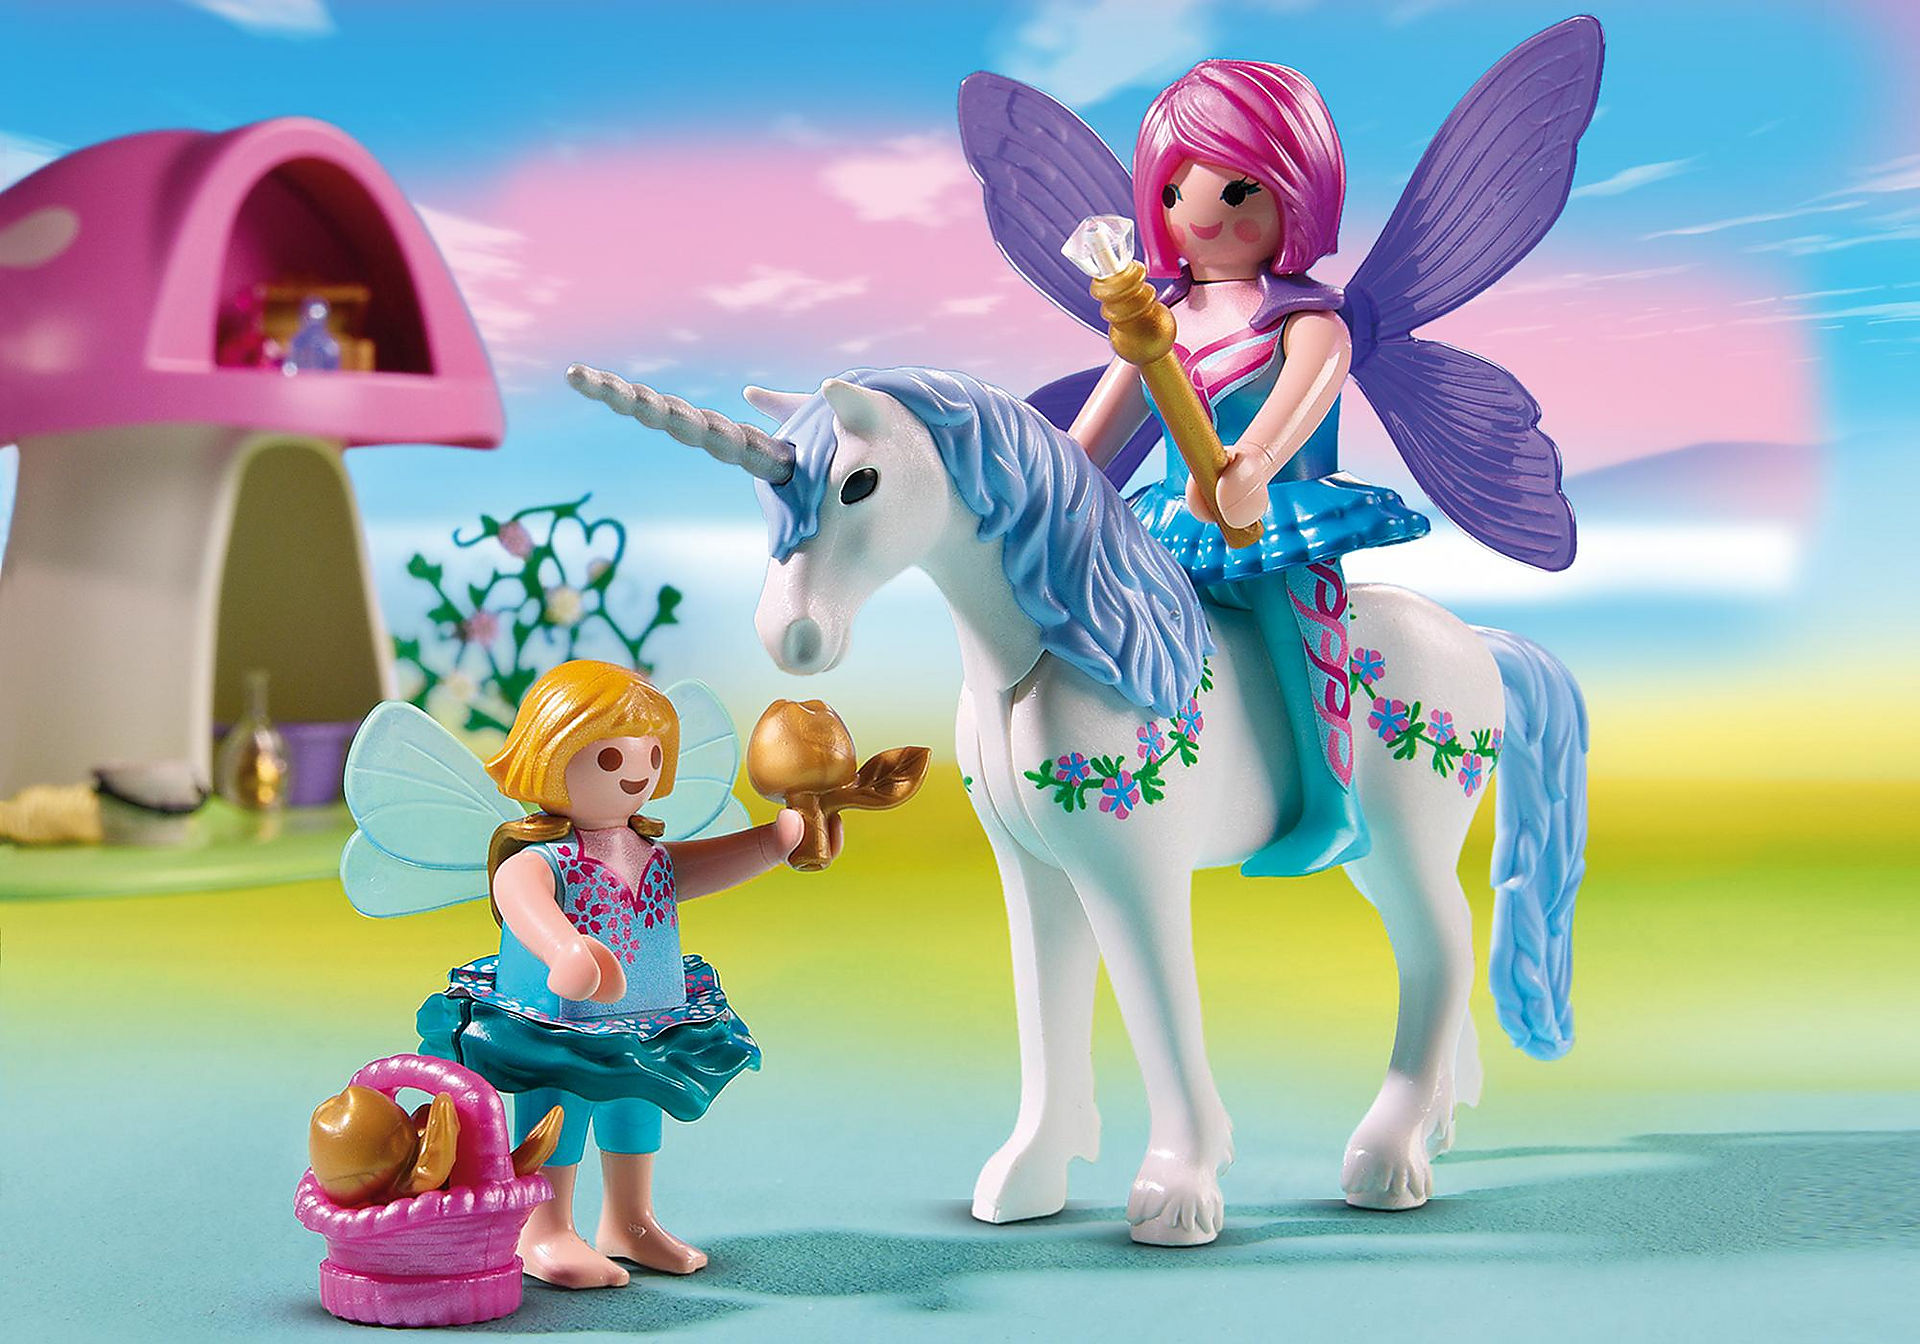 http://media.playmobil.com/i/playmobil/6055_product_extra1/Fairies with Toadstool House